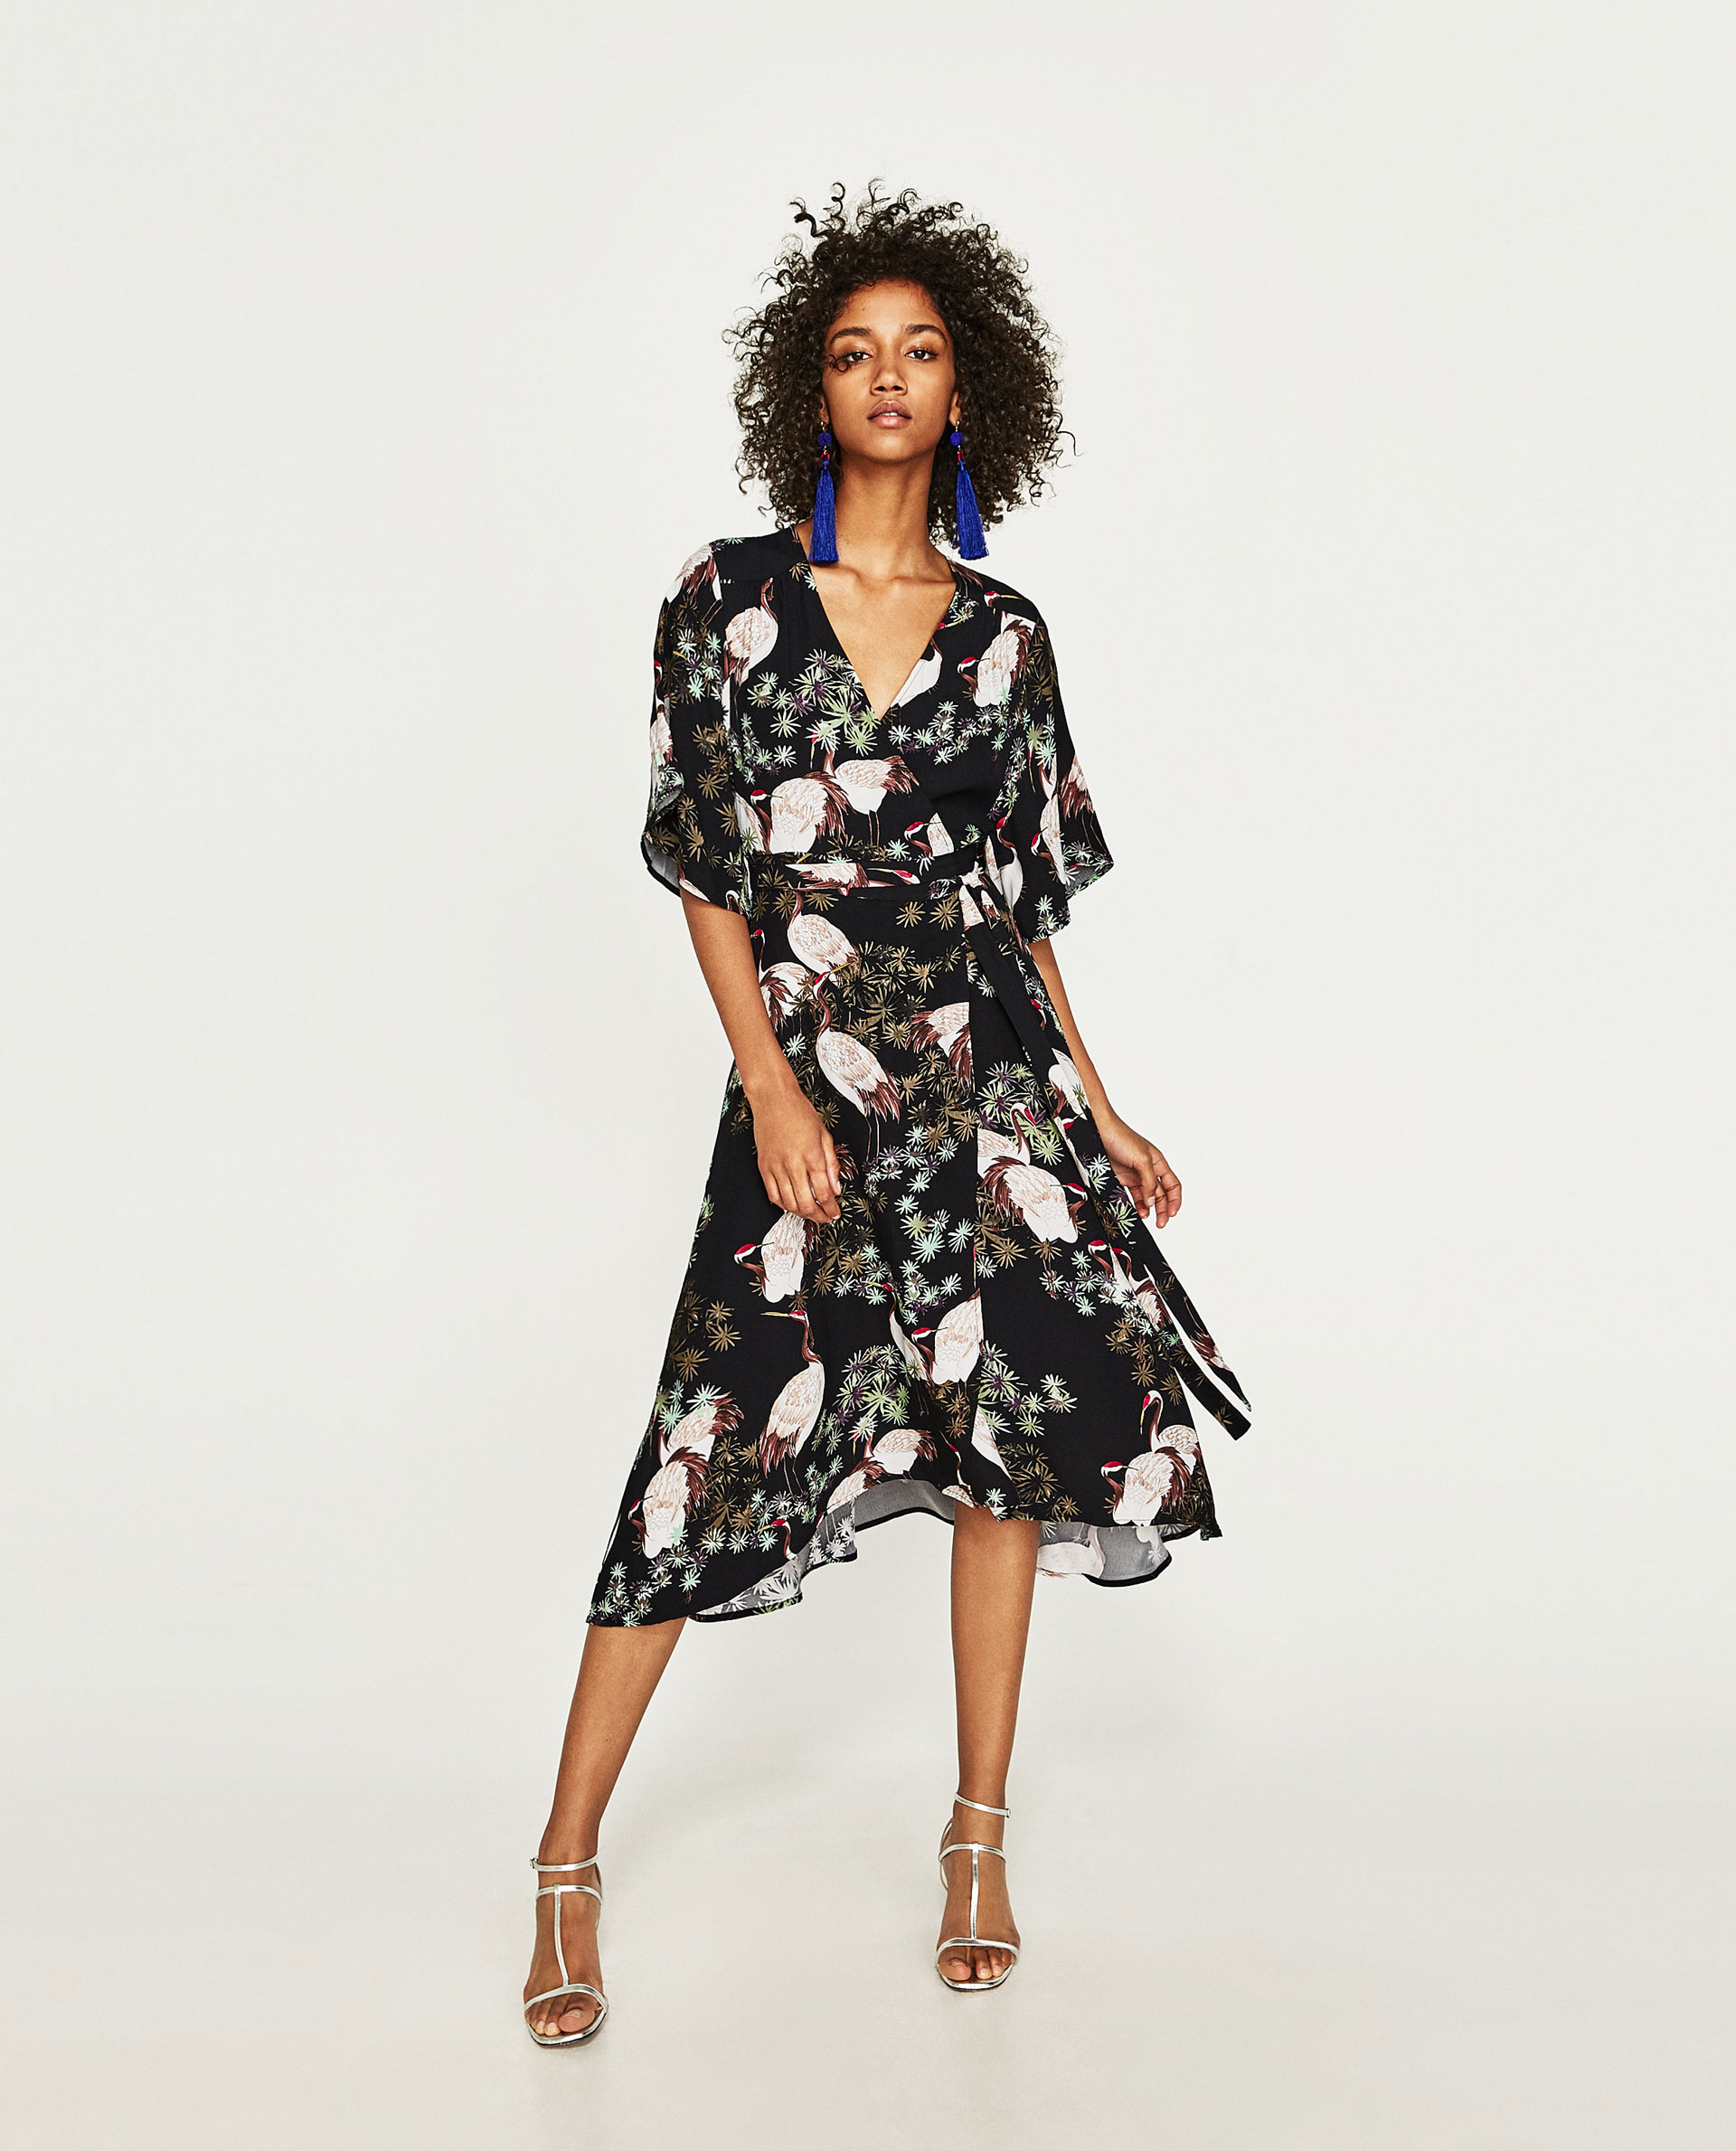 Zara  £59.99 this is such cool bird print i couldn't resist adding it. Great with a white boyfriend blazer slung over and heels.